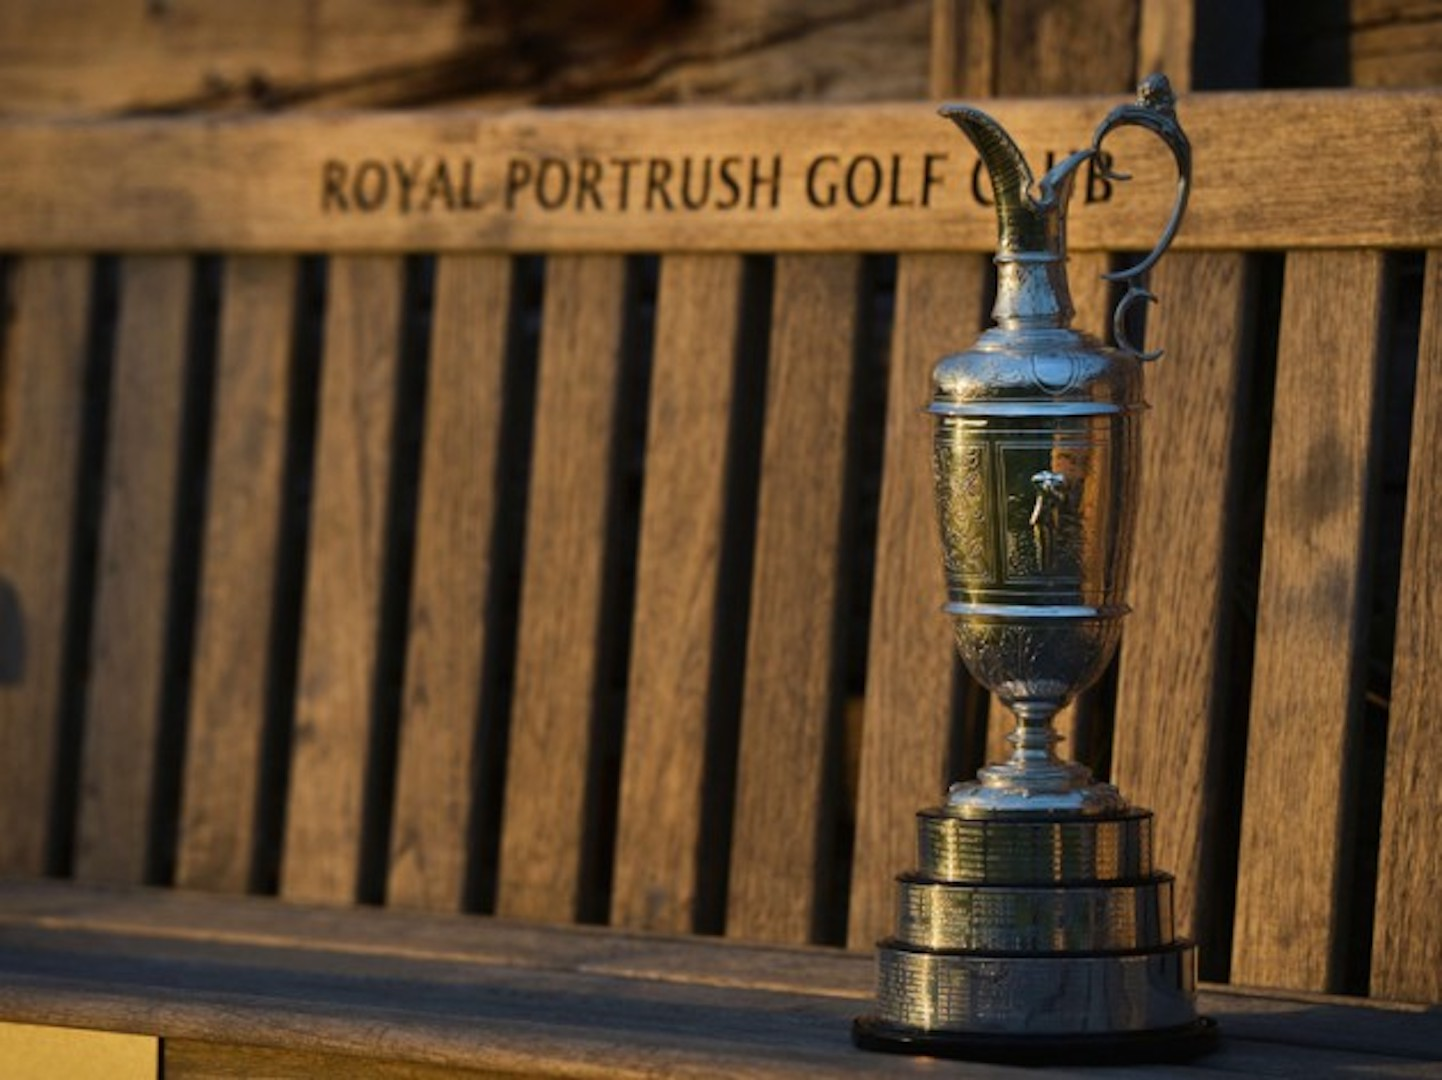 The 148th Open Championship sells out